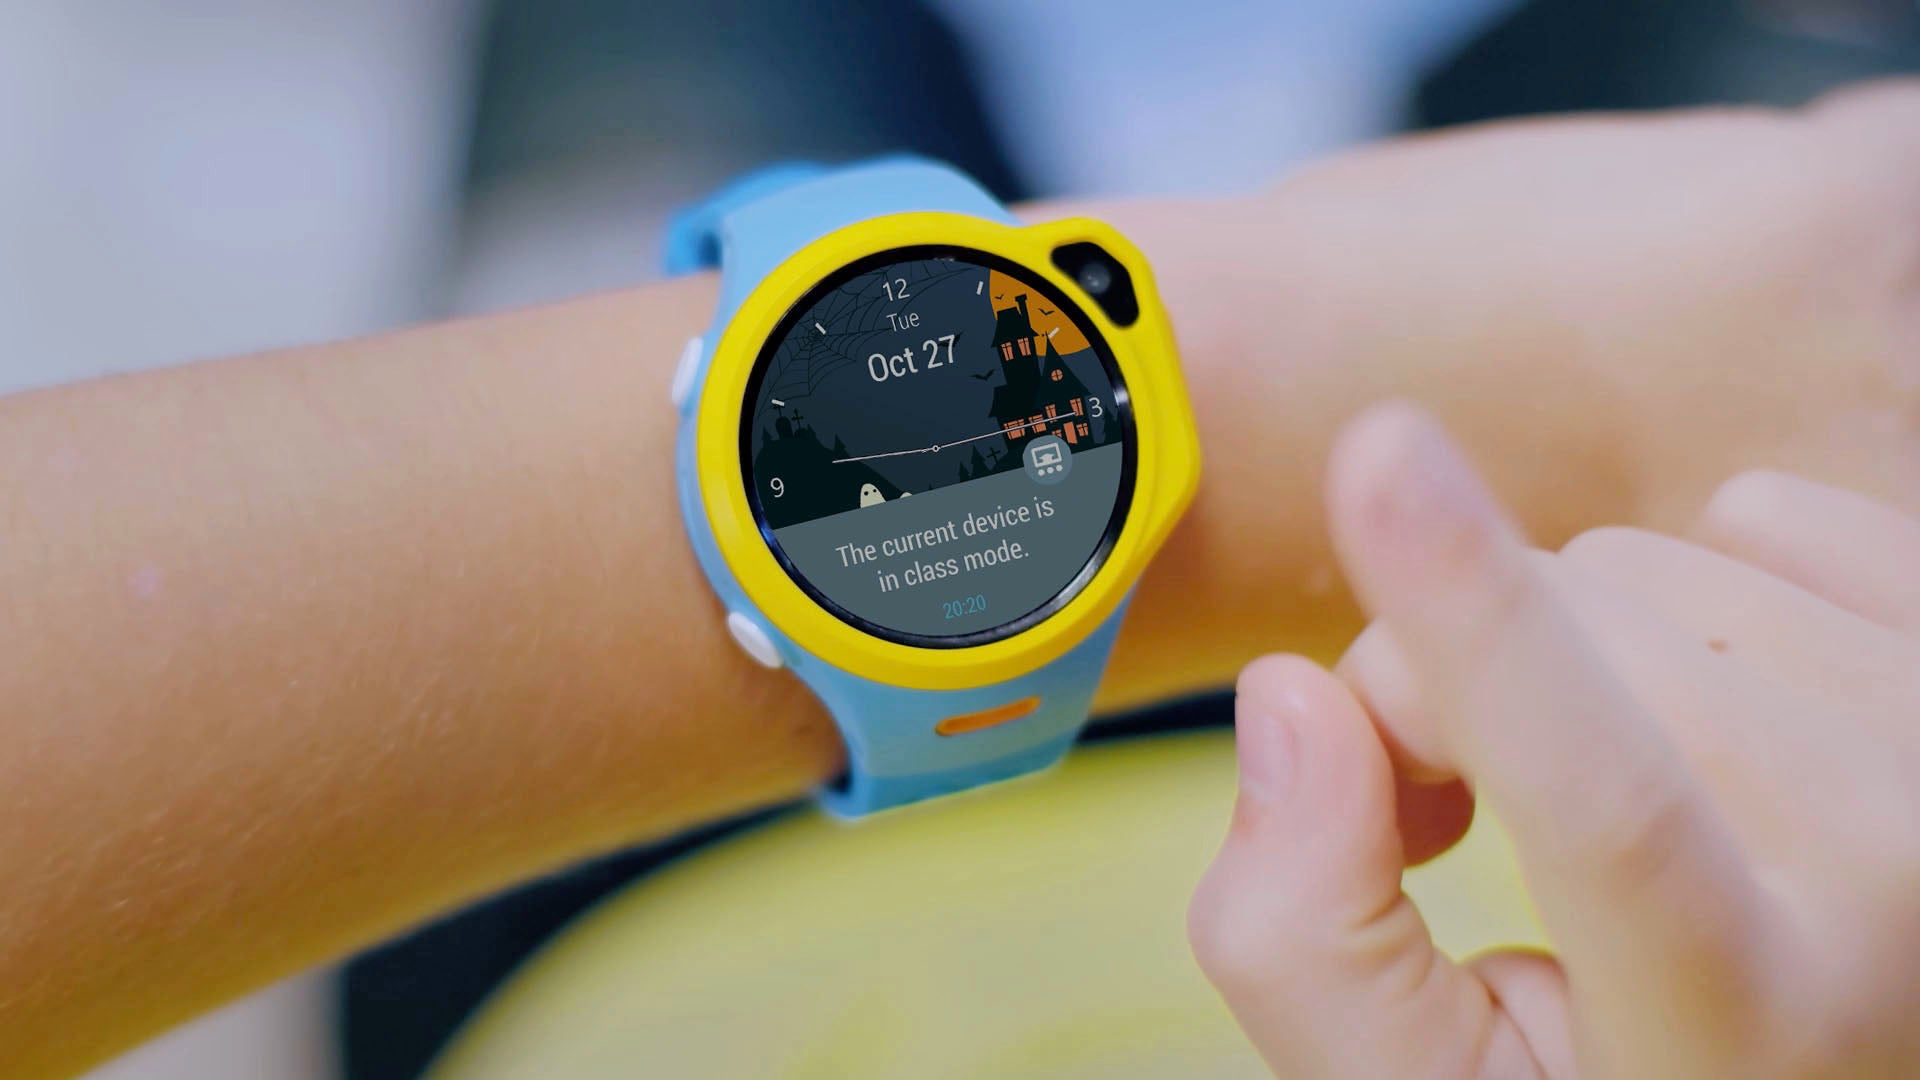 myFirst Fone R1 - Smart watch phone for kids with gps tracker and MP3 Player with Class Mode